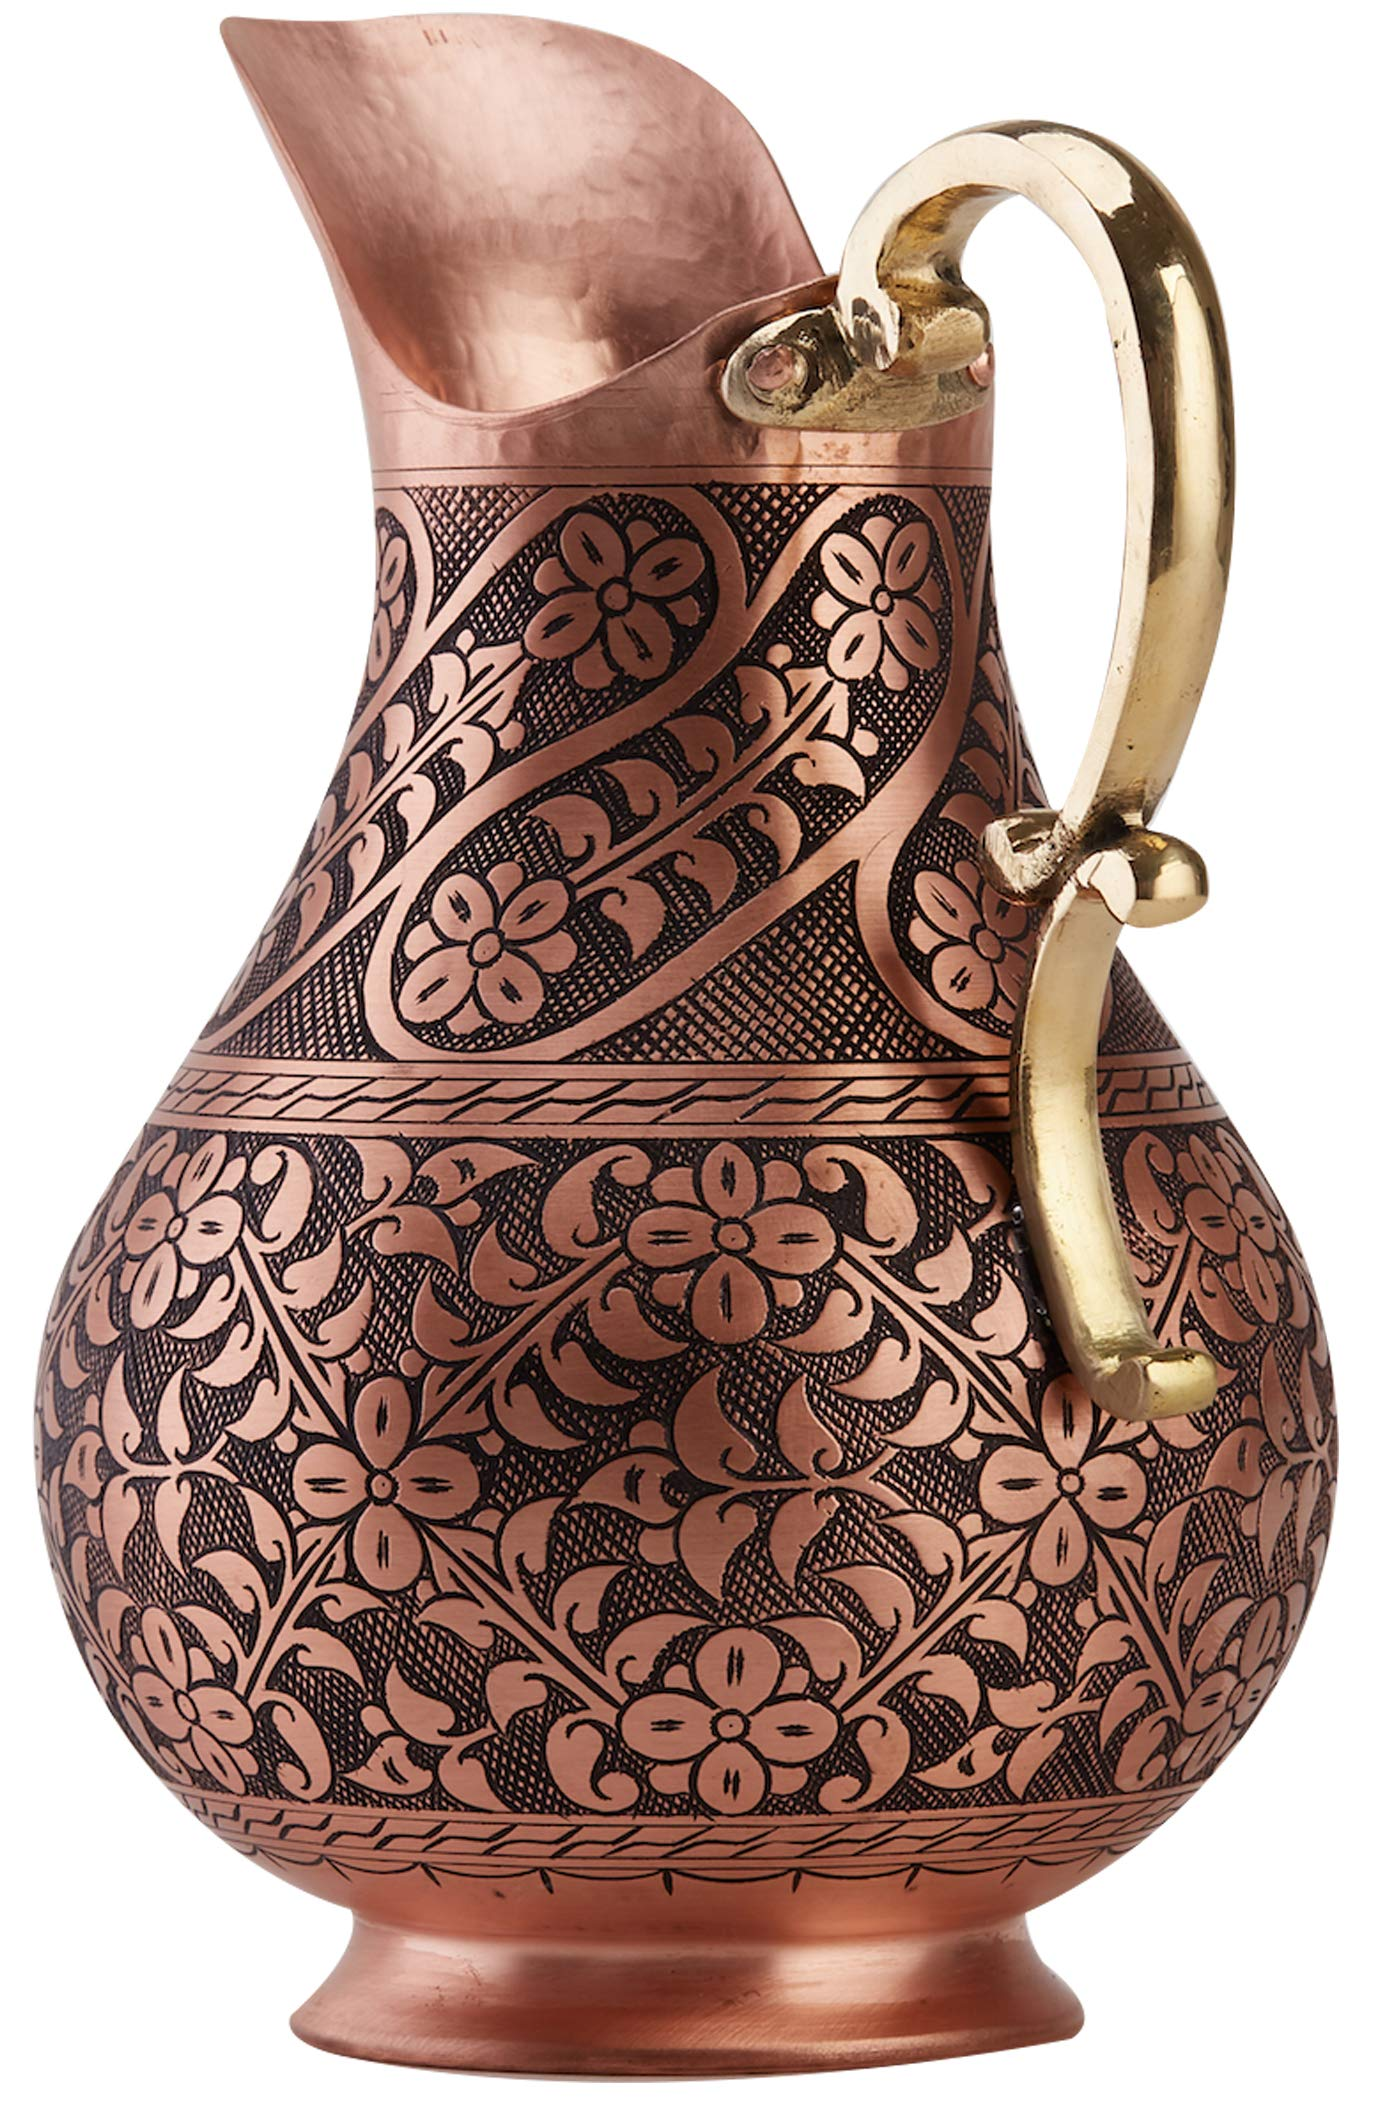 DEMMEX The Pitcher, 1mm Solid Copper Handmade Engraved Copper Pitcher Vessel Ayurveda Jug for Drinking Water, Moscow Mule, Cocktail (Matte-ArtWork) by DEMMEX (Image #2)